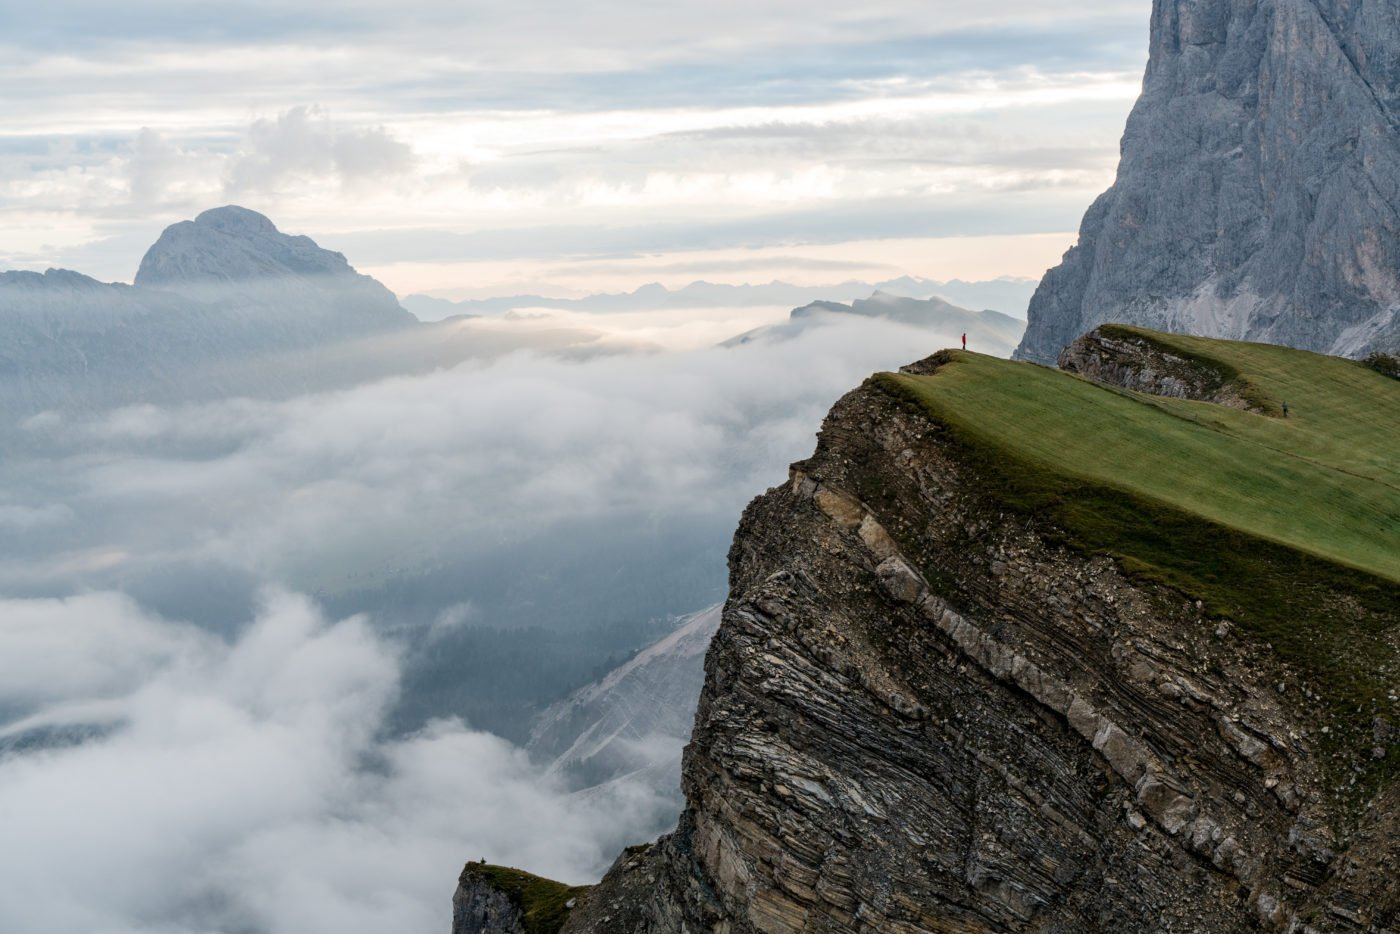 Seceda 2500m, famous Instagram location in South Tyrol